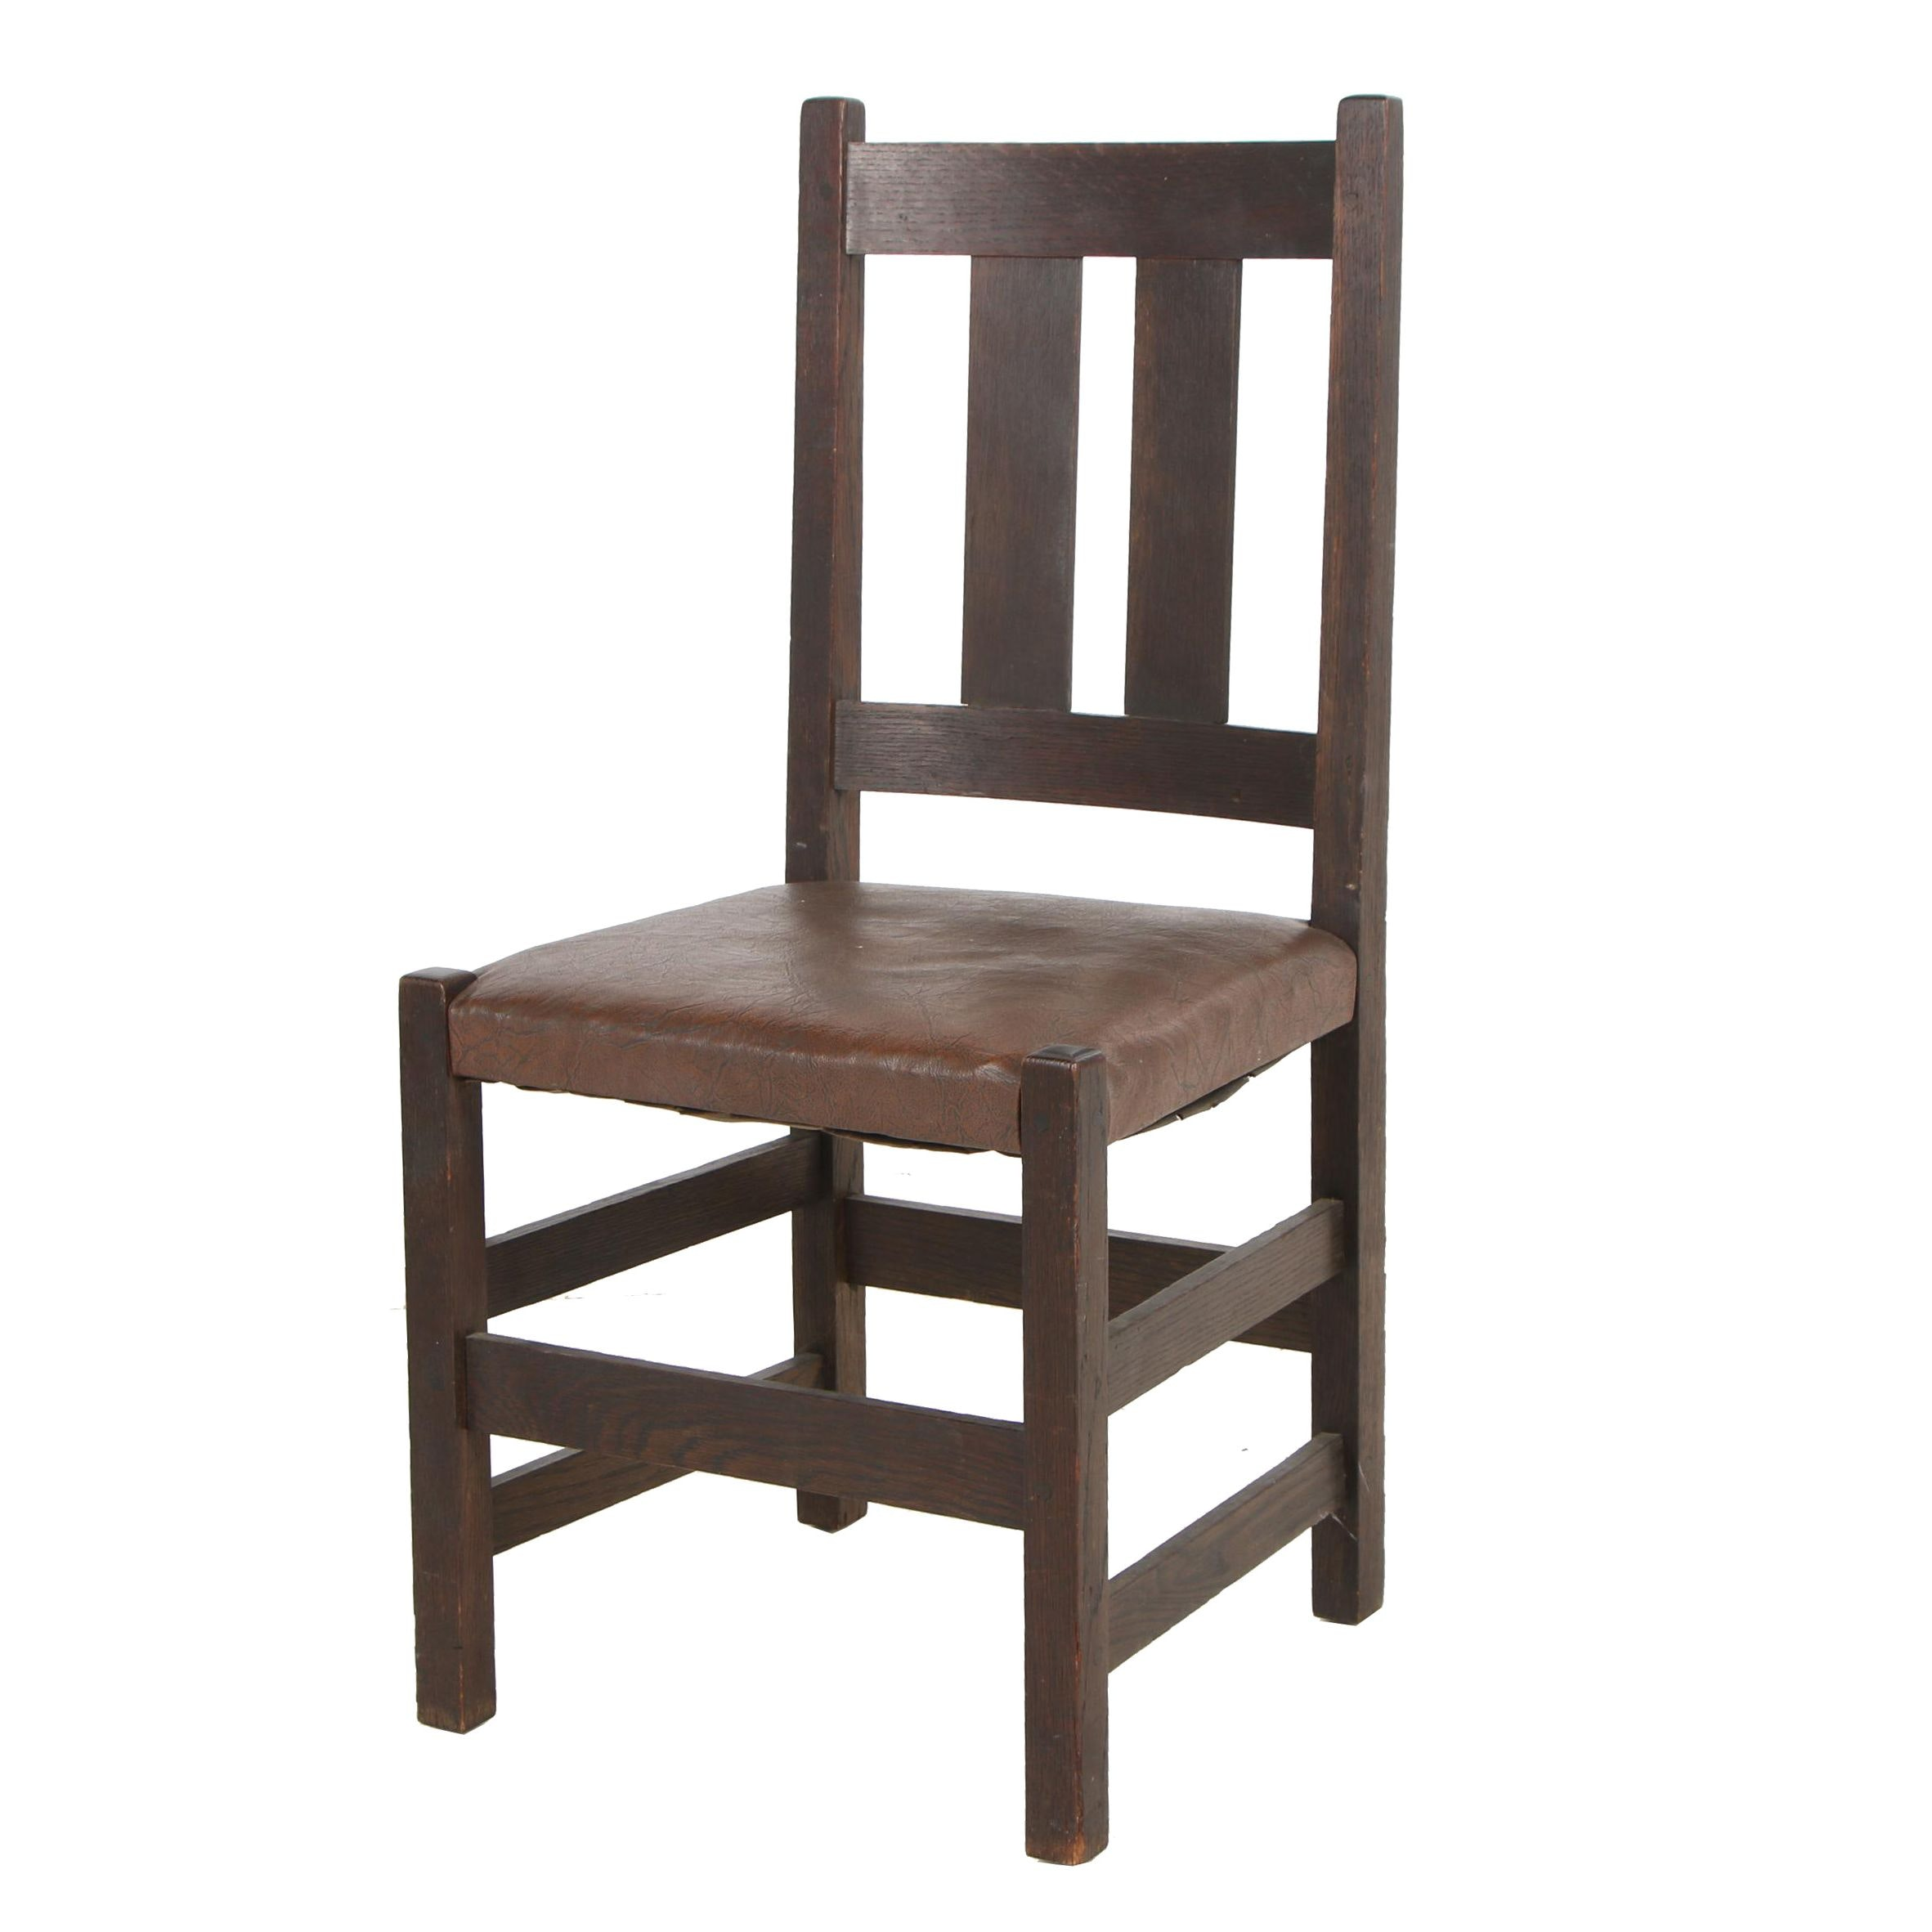 Ridenour Arts & Crafts Furniture Slat Back Chair with Leather Seat